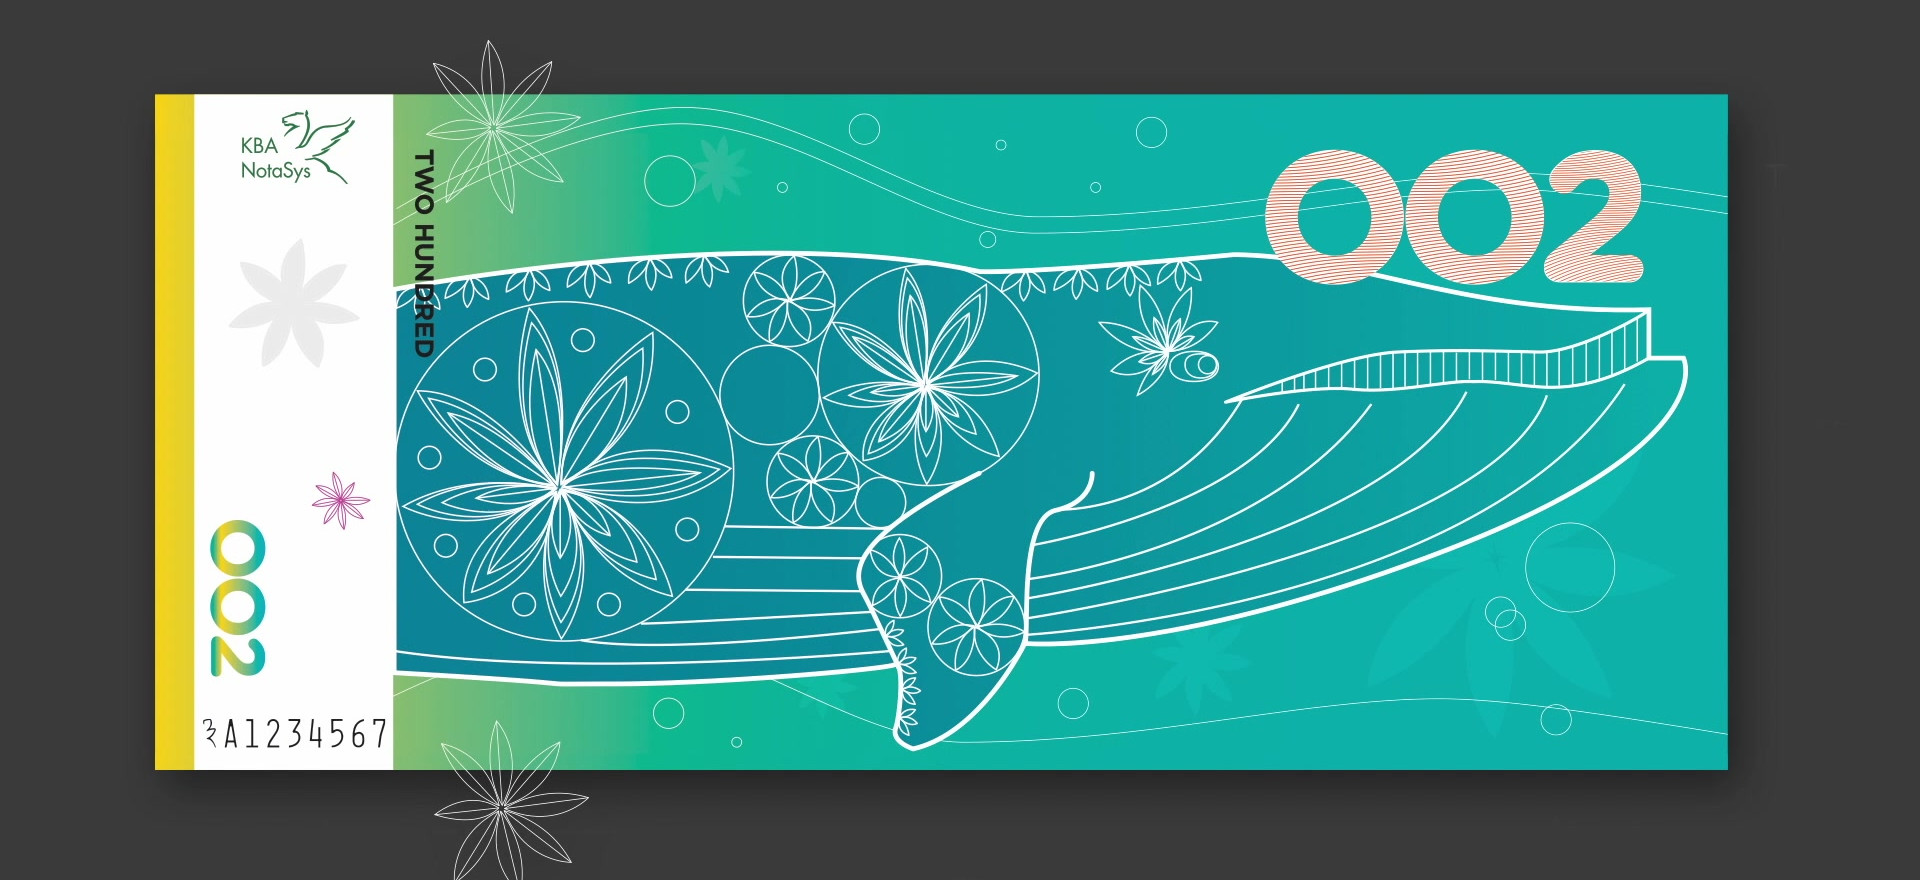 Front Banknotes Family Design